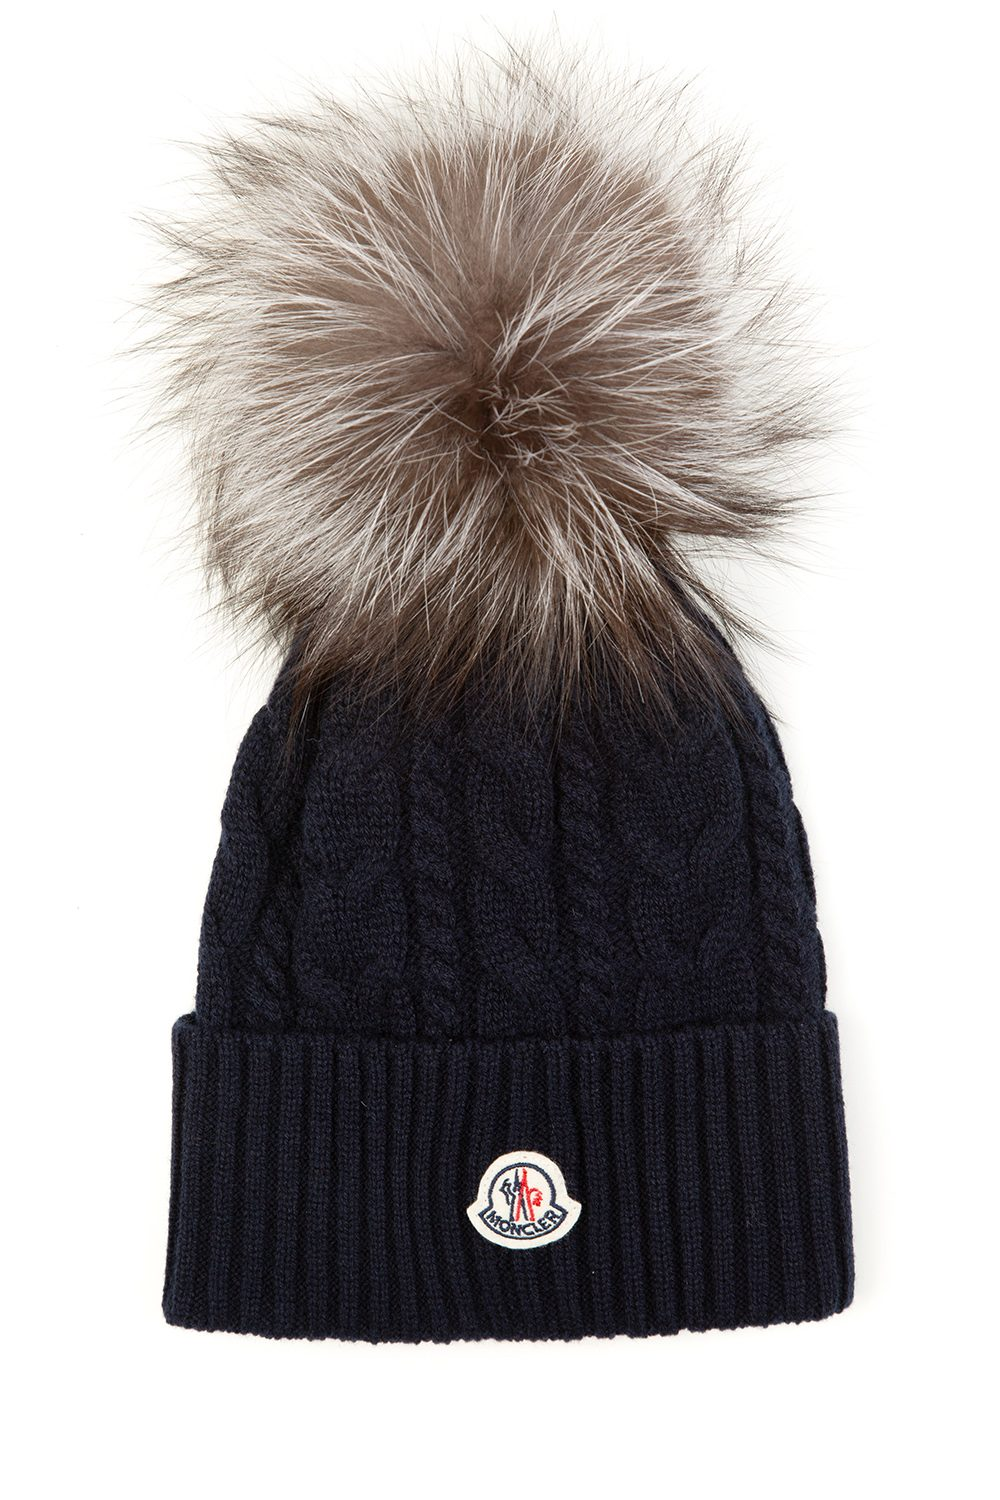 Moncler Women s Cable Knit Beanie Hat Navy - Linea Fashion 44a0147e7f